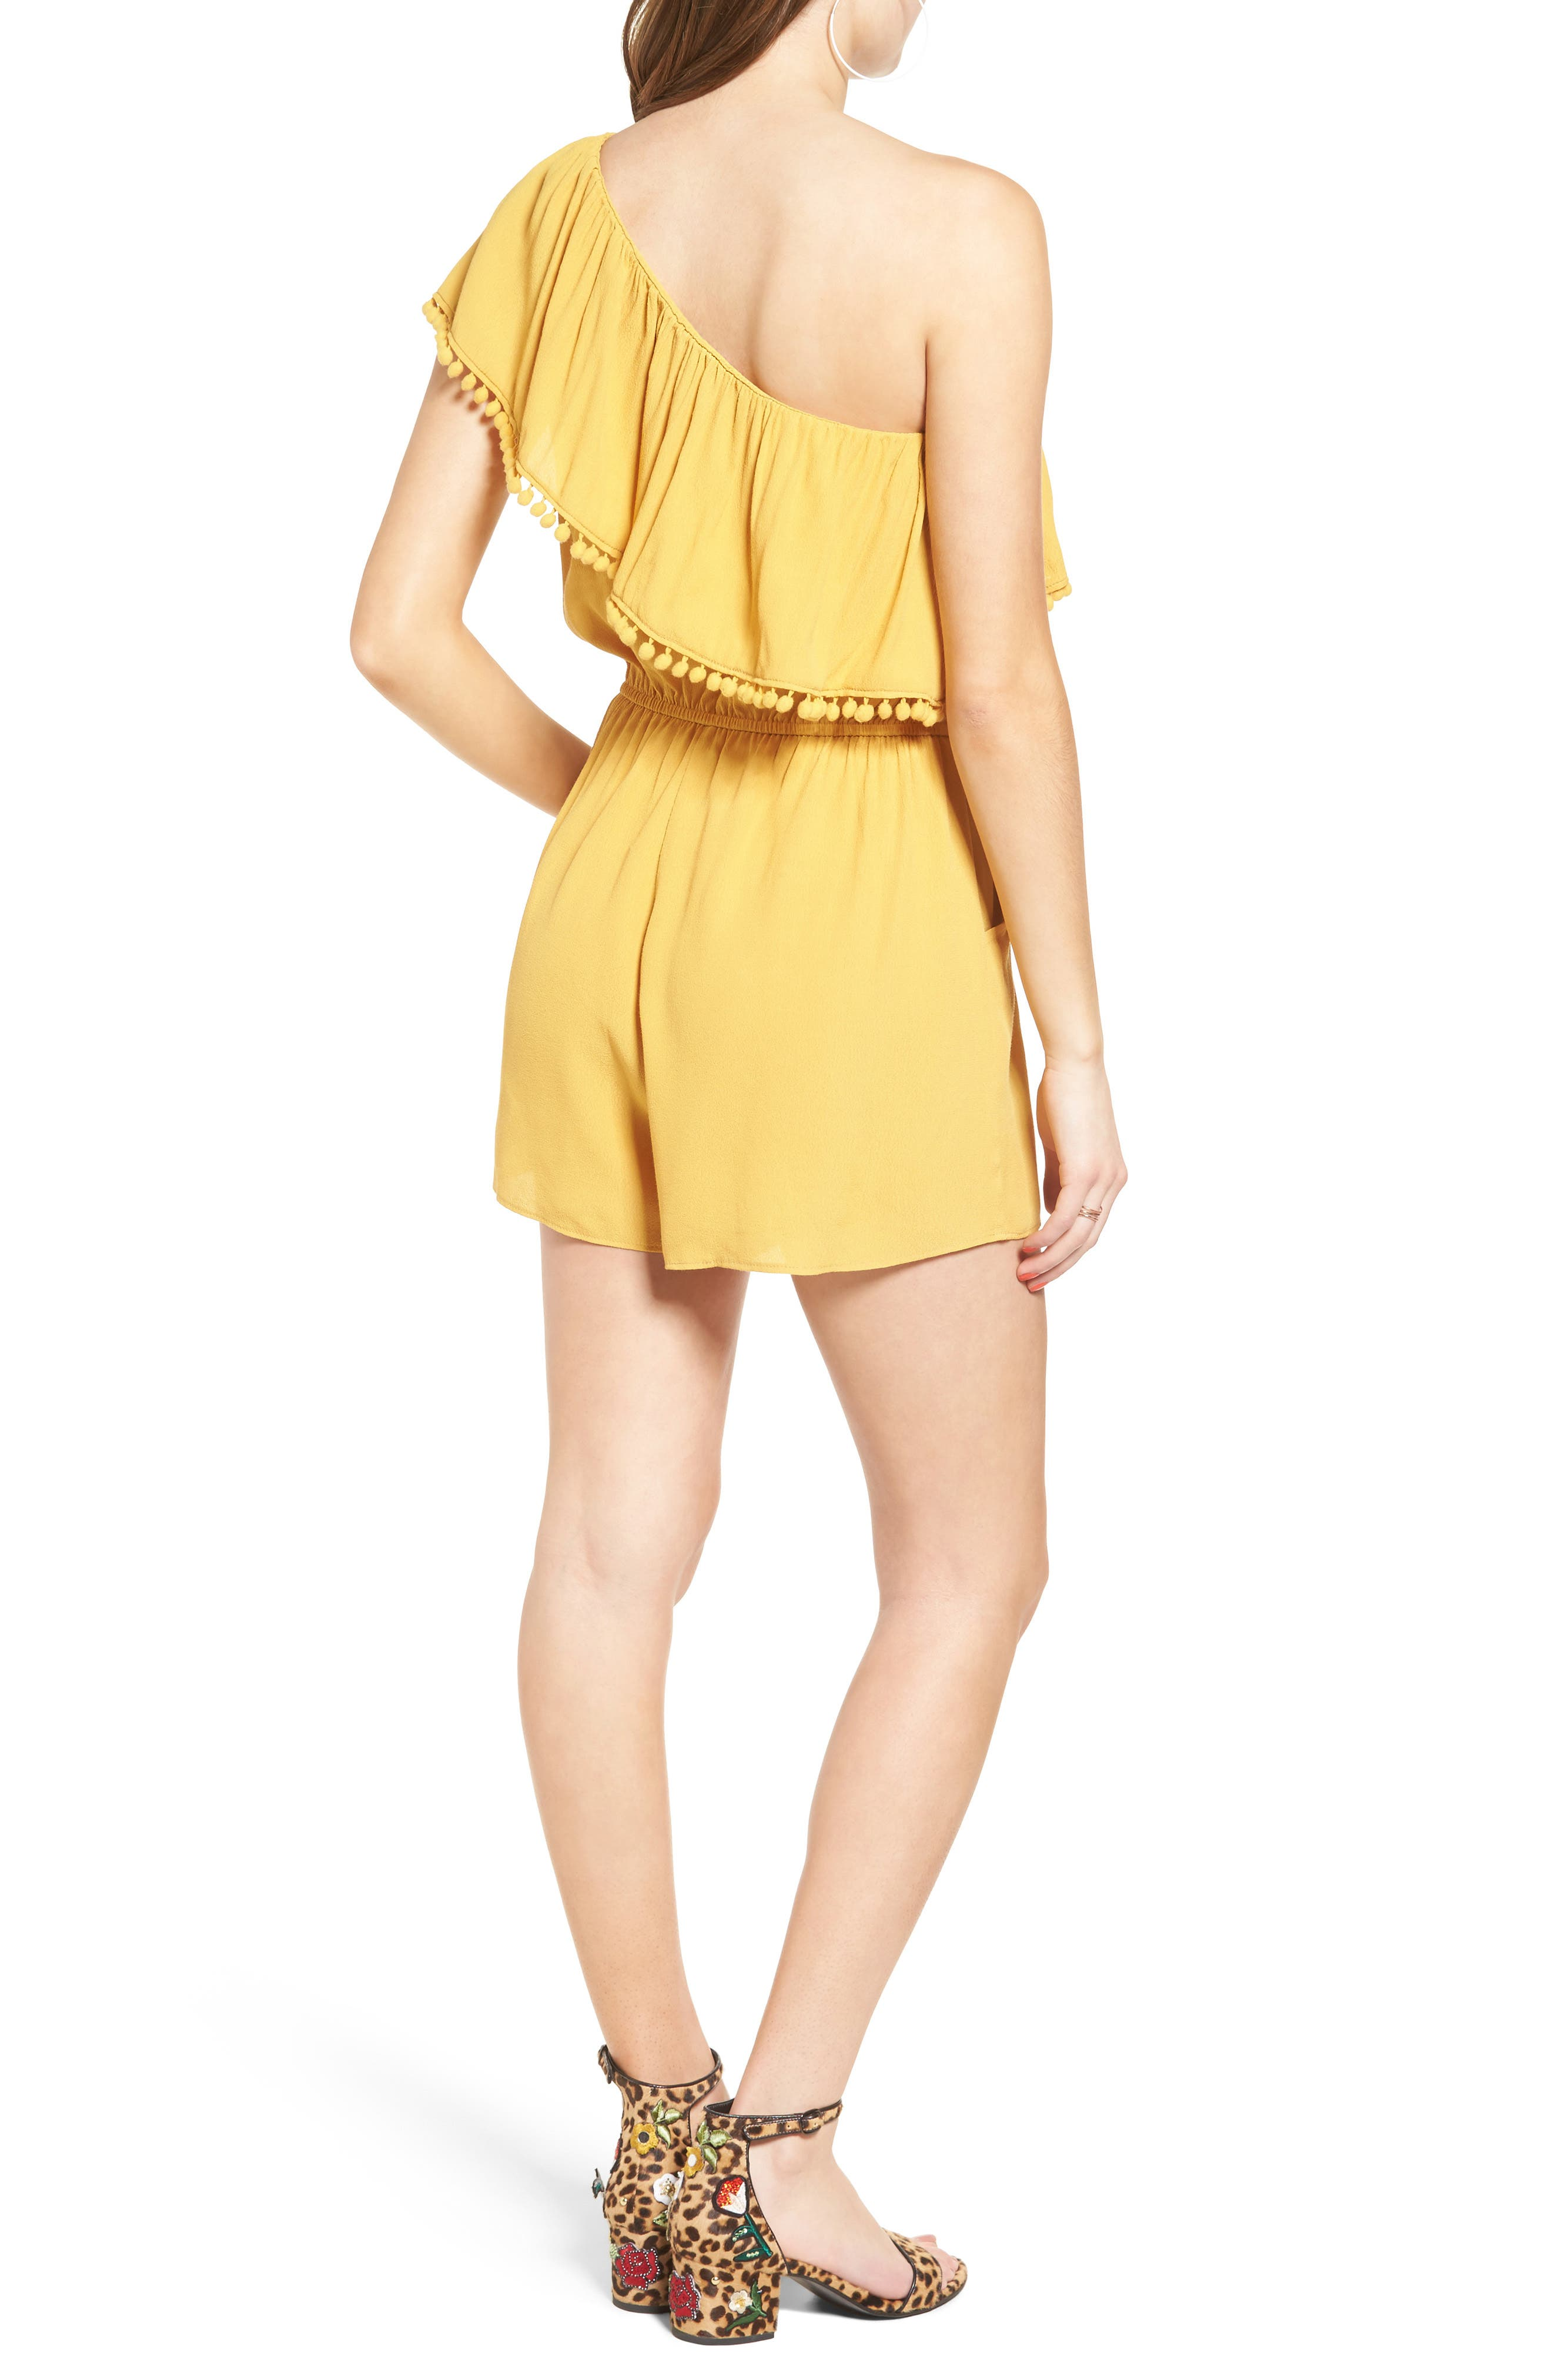 TEN SIXTY SHERMAN, One-Shoulder Ruffle Romper, Alternate thumbnail 2, color, 701